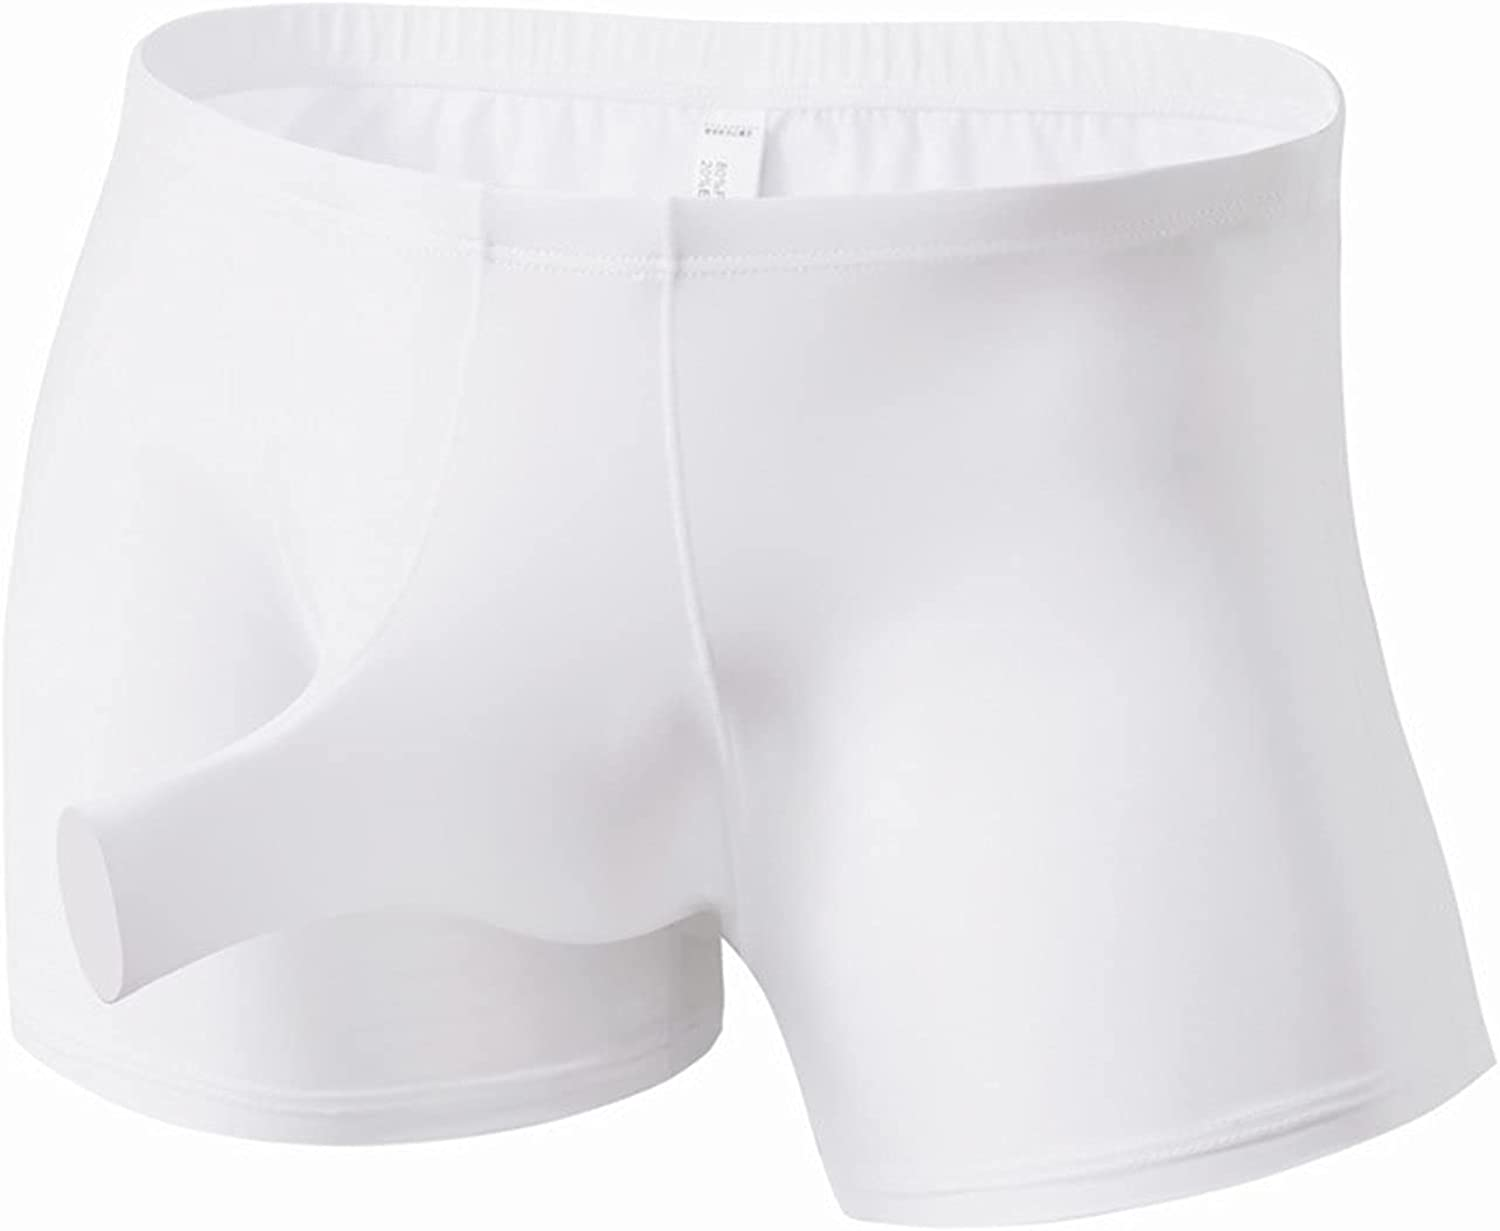 Men's Ice Silk Elephant Nose Boxer Briefs U Convex See-Through Soft Underwear Sexy G-String Thong Underpants With Pouch